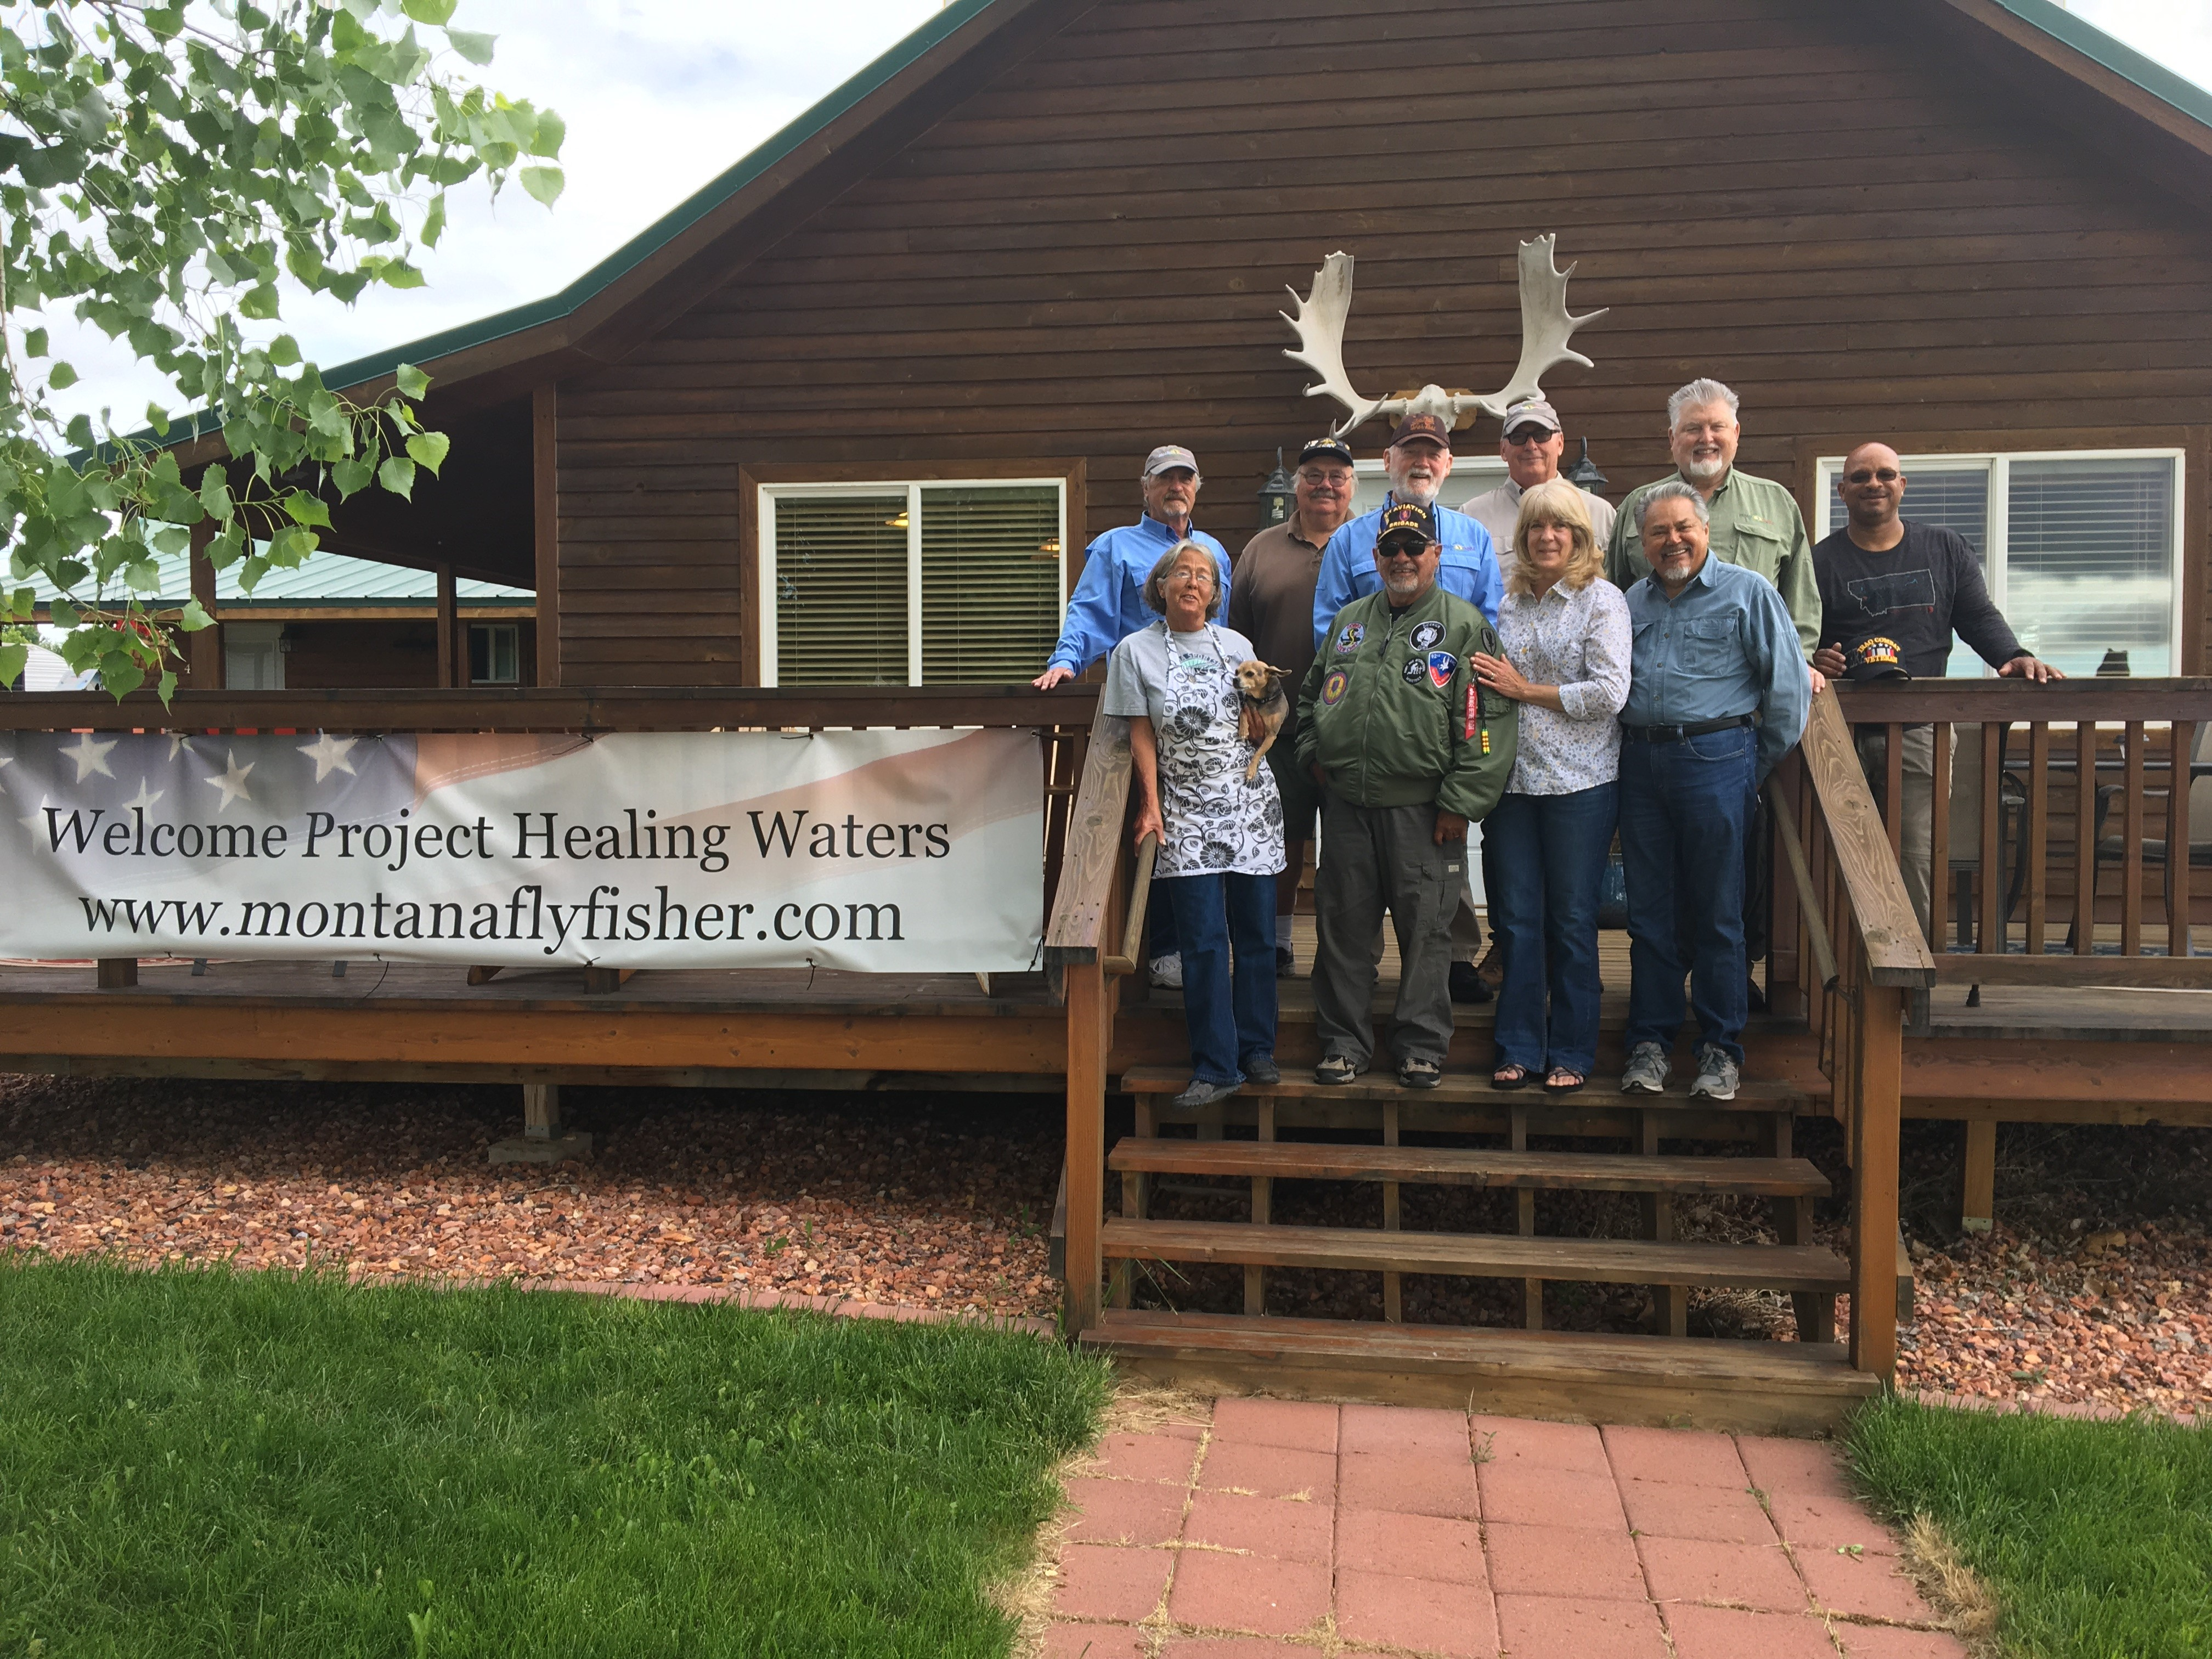 Long Beach Program Fishes Bighorn River for Tenth Year